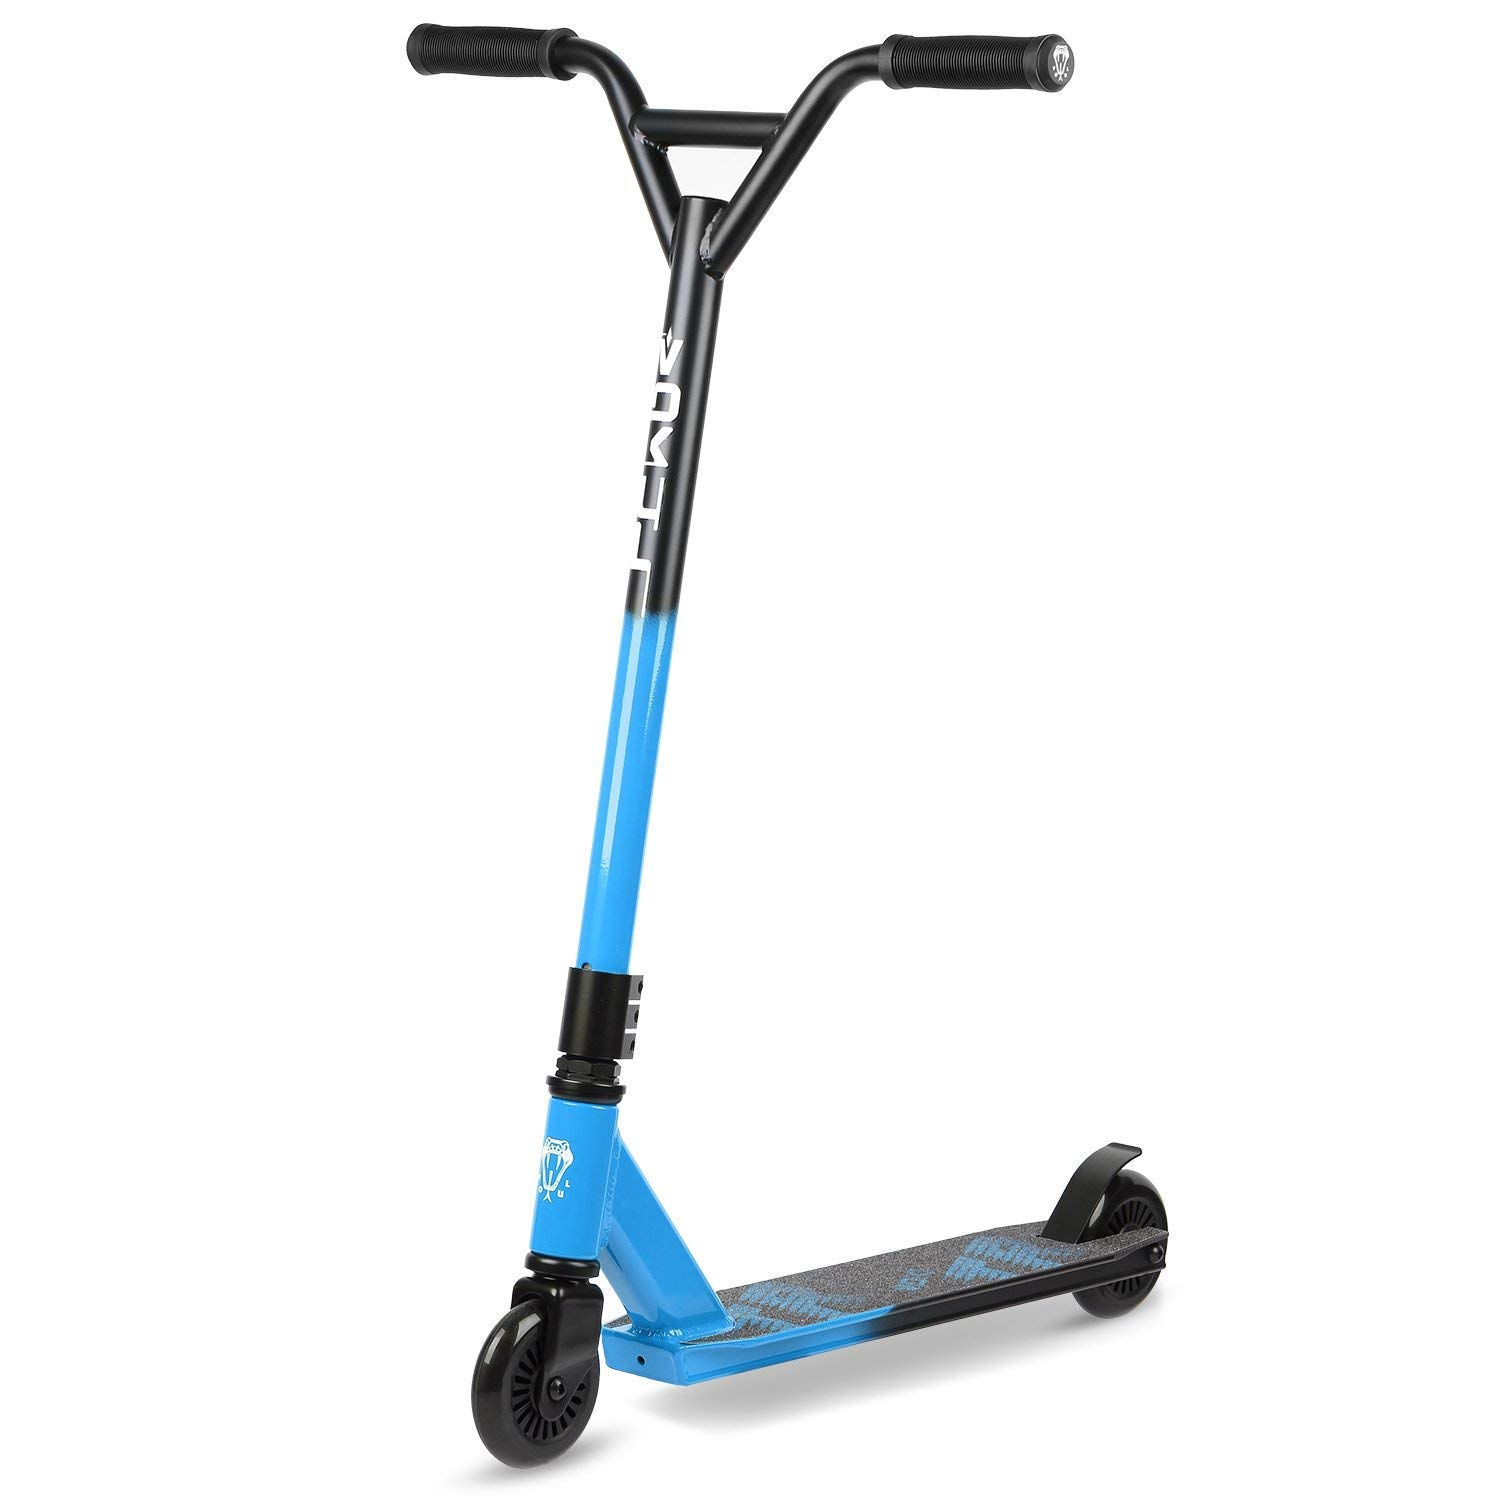 VOKUL TRII-S2 Freestyle Pro Stunt Scooter - Best Entry Level (Blue)